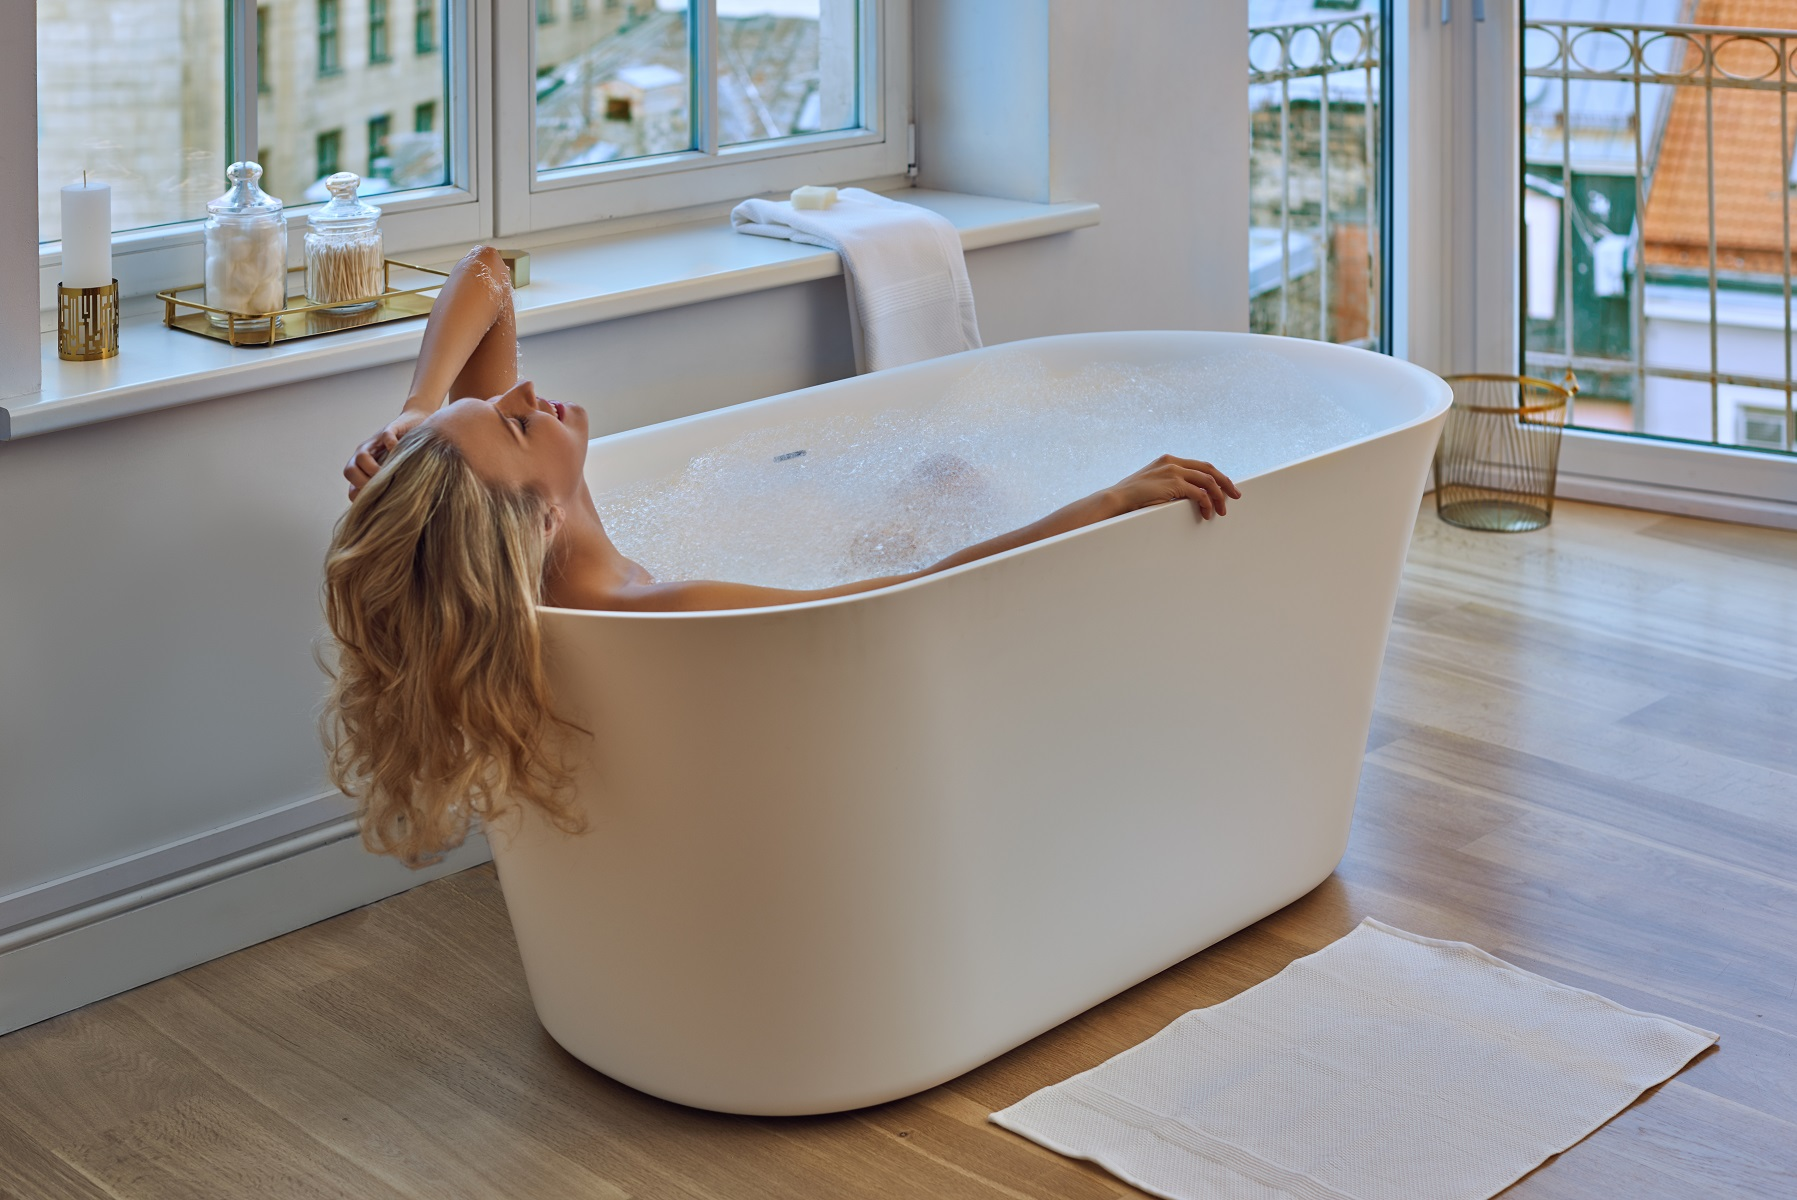 The Simple Yet Elegant Structure Of The Tulipu0027s Refined Shape, Allows This Freestanding  Bathtub To Be Easily Used In Both Contemporary And Large Bathrooms, ...